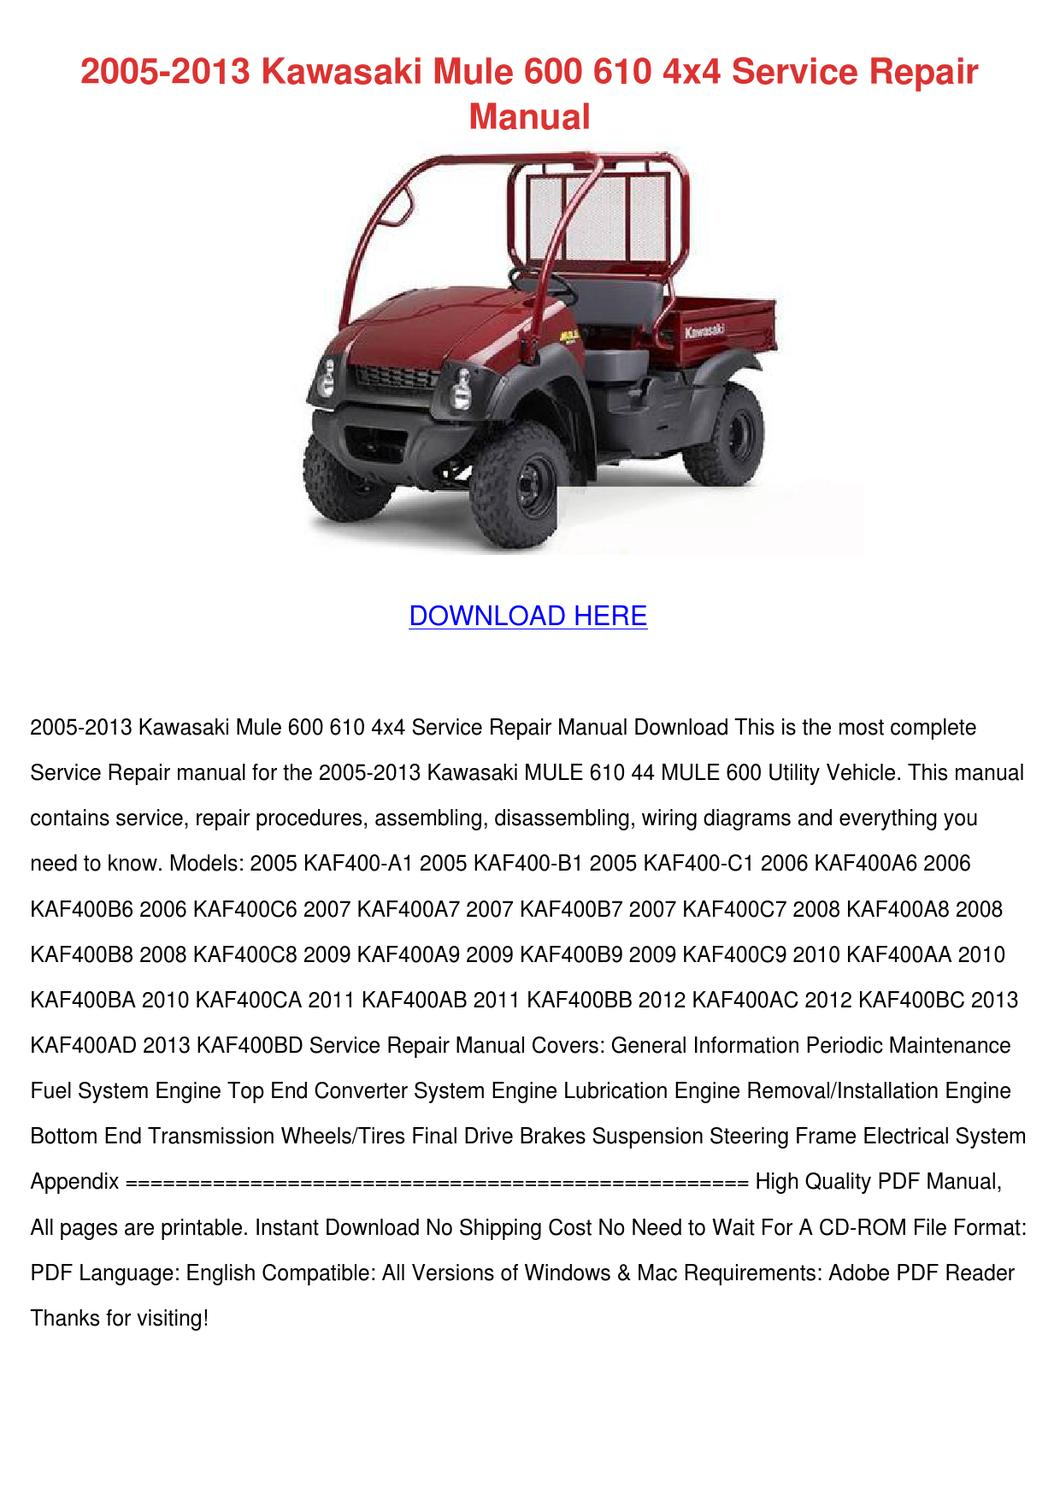 2005 2013 Kawasaki Mule 600 610 4x4 Service R By Sammyrosenbaum Issuu Wiring Diagram For 4010